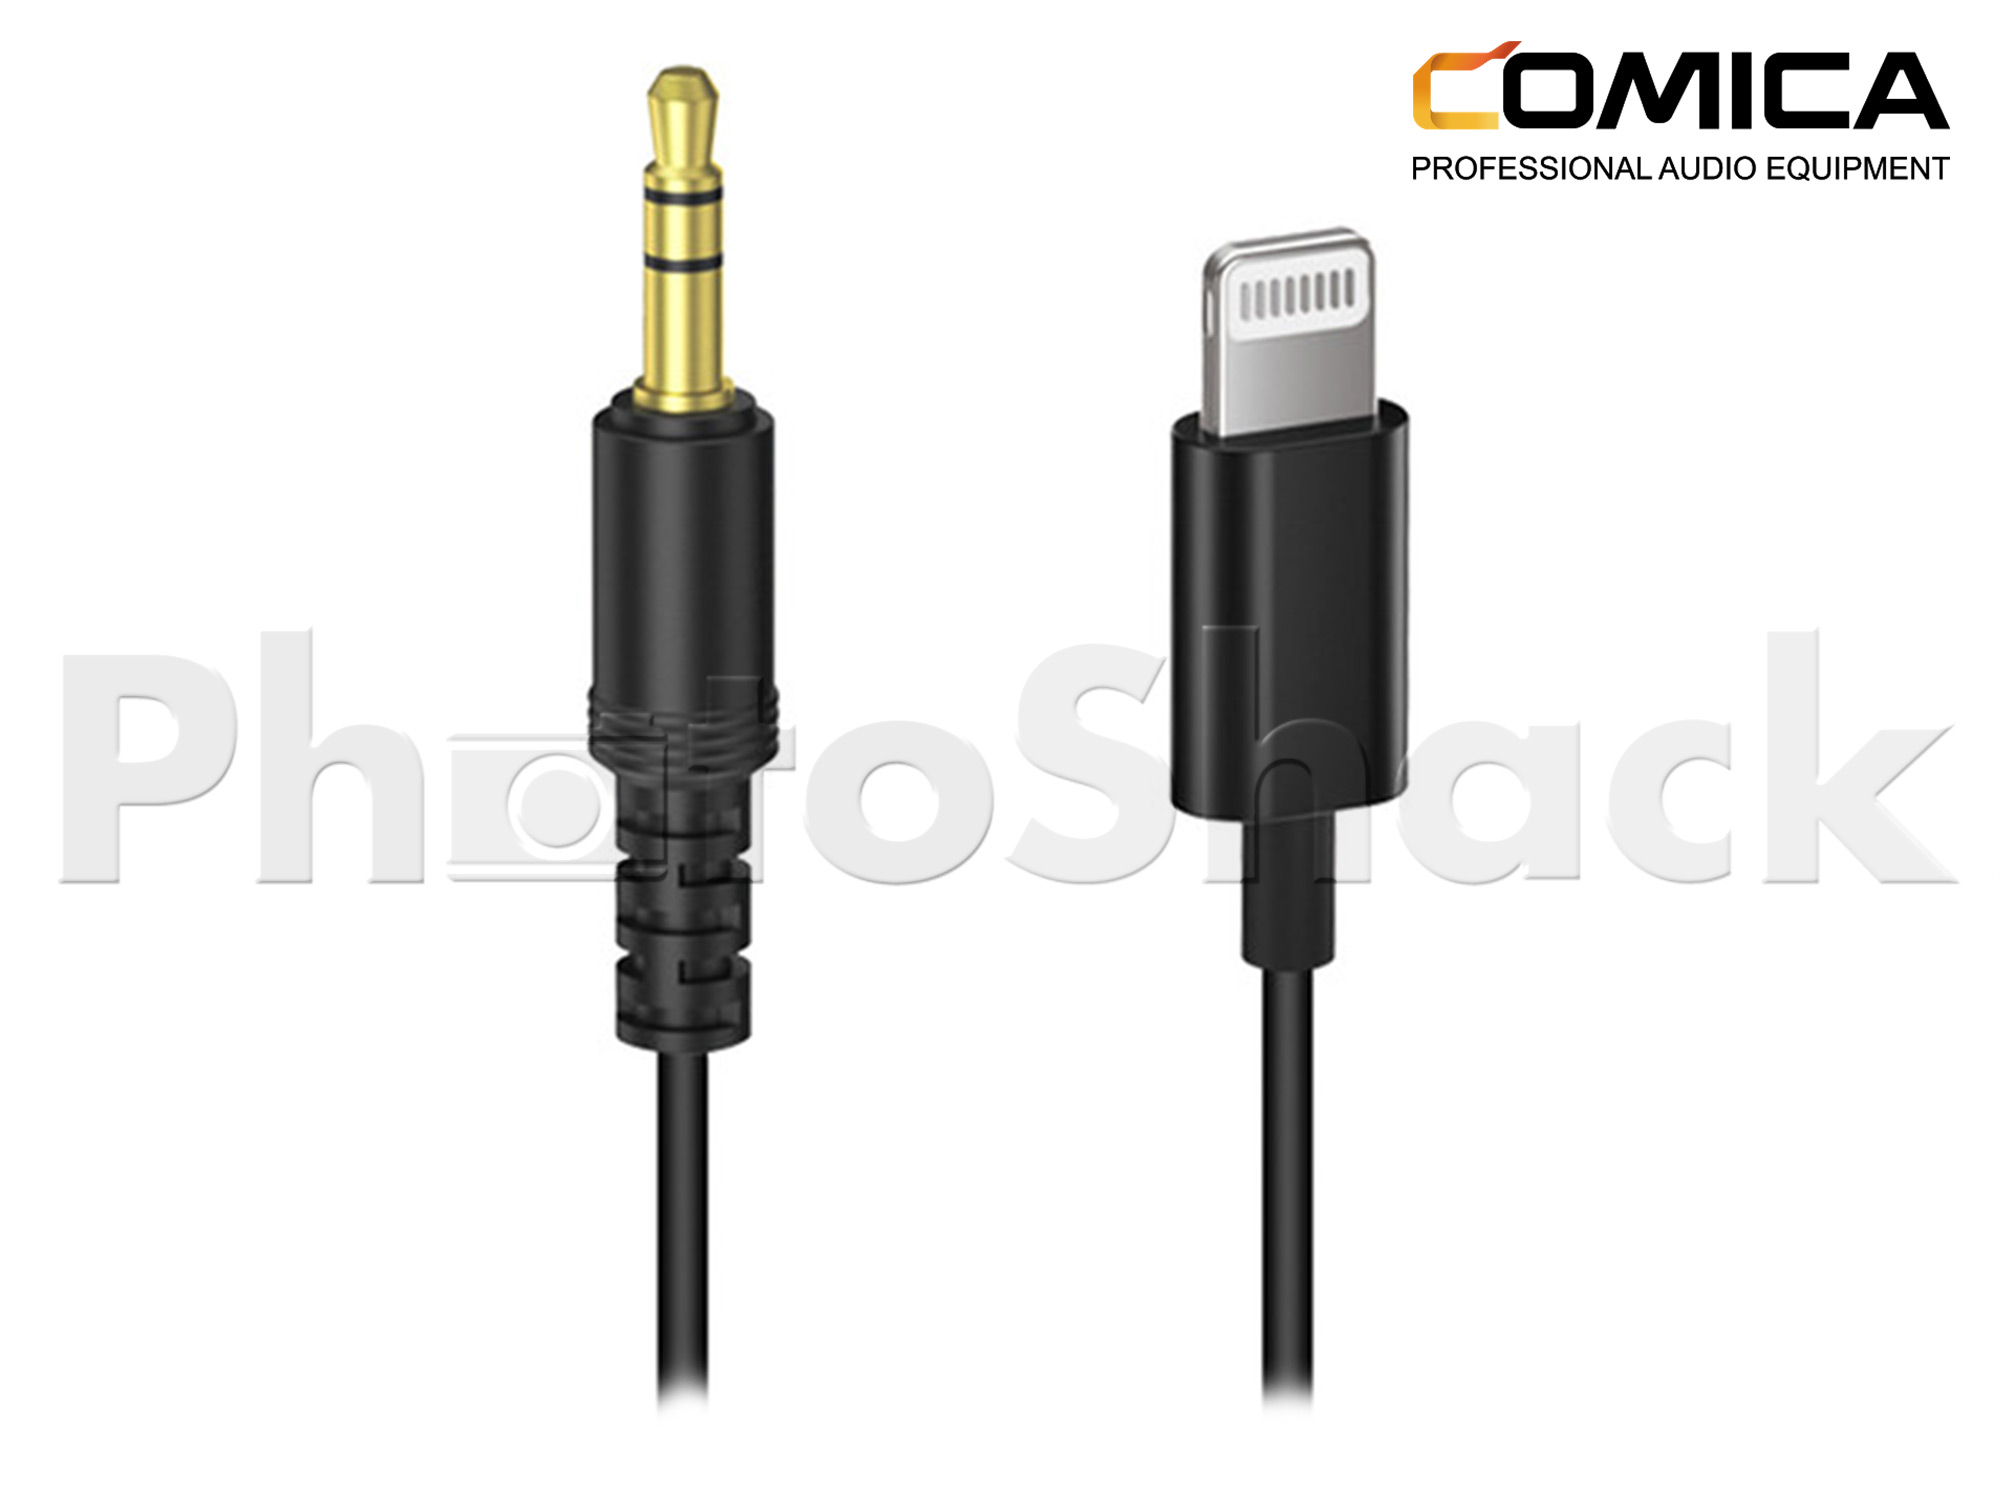 Comica Audio 3.5mm TRS to Lightning Connector for iPhone & Apple Devices